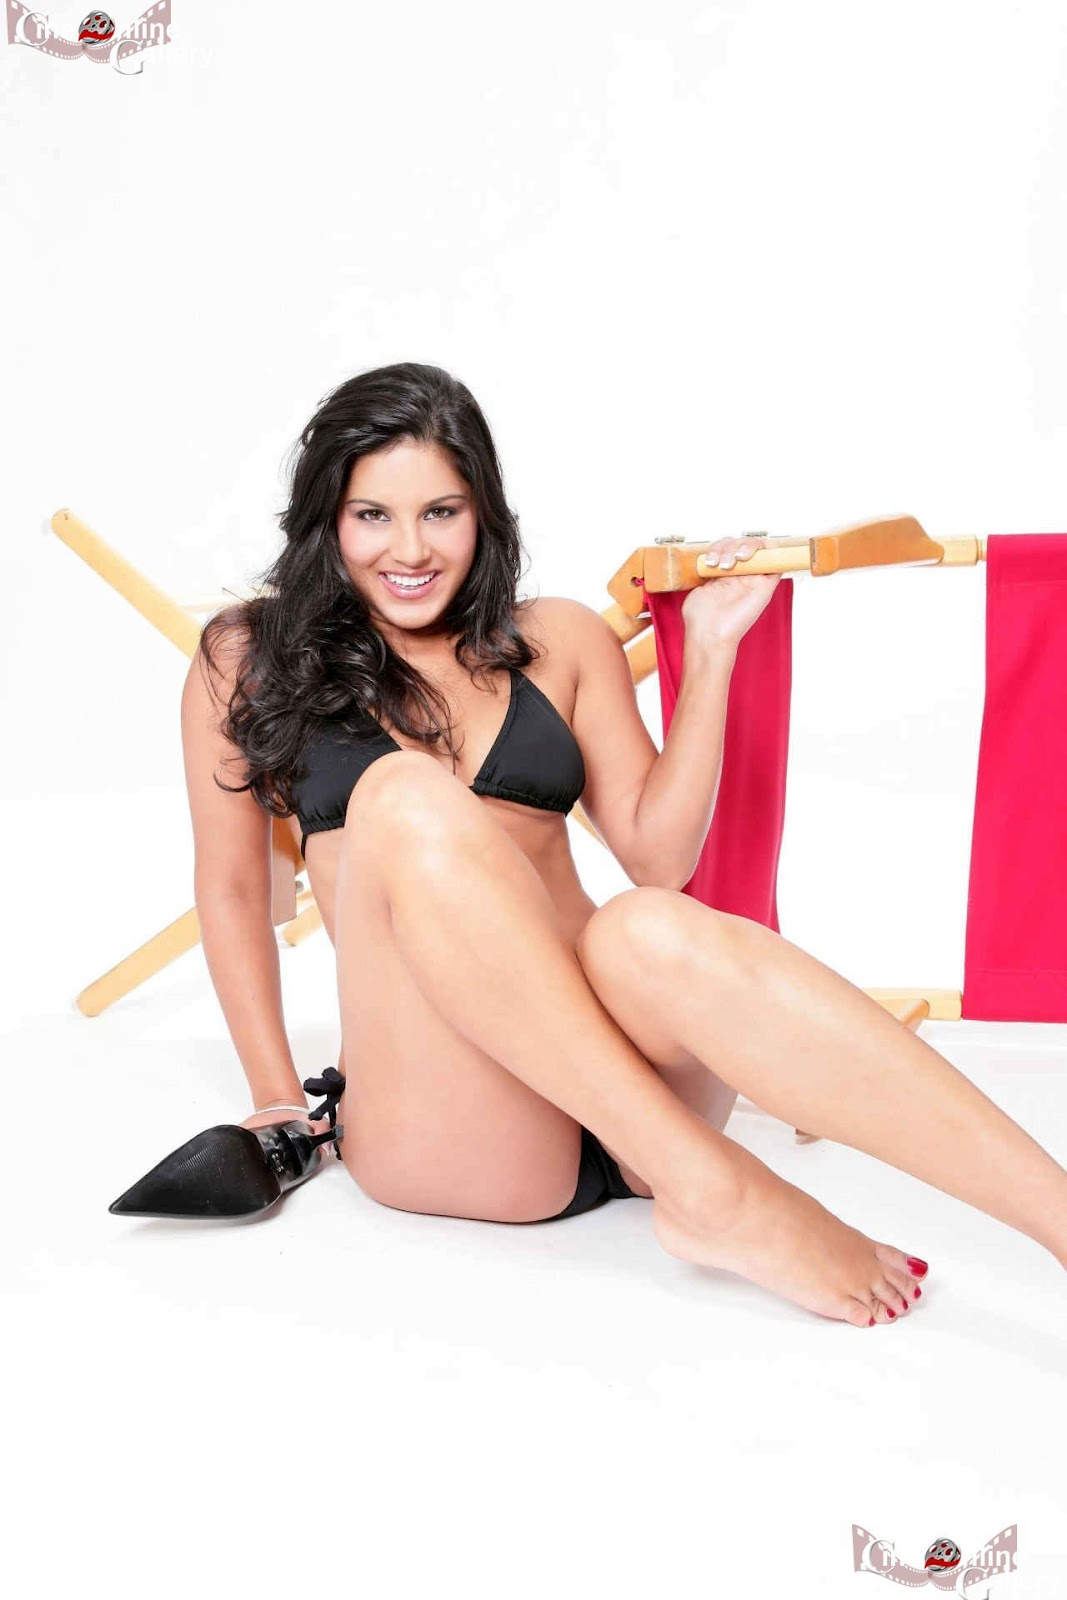 Sunny Leone 2012 photo shoots must see